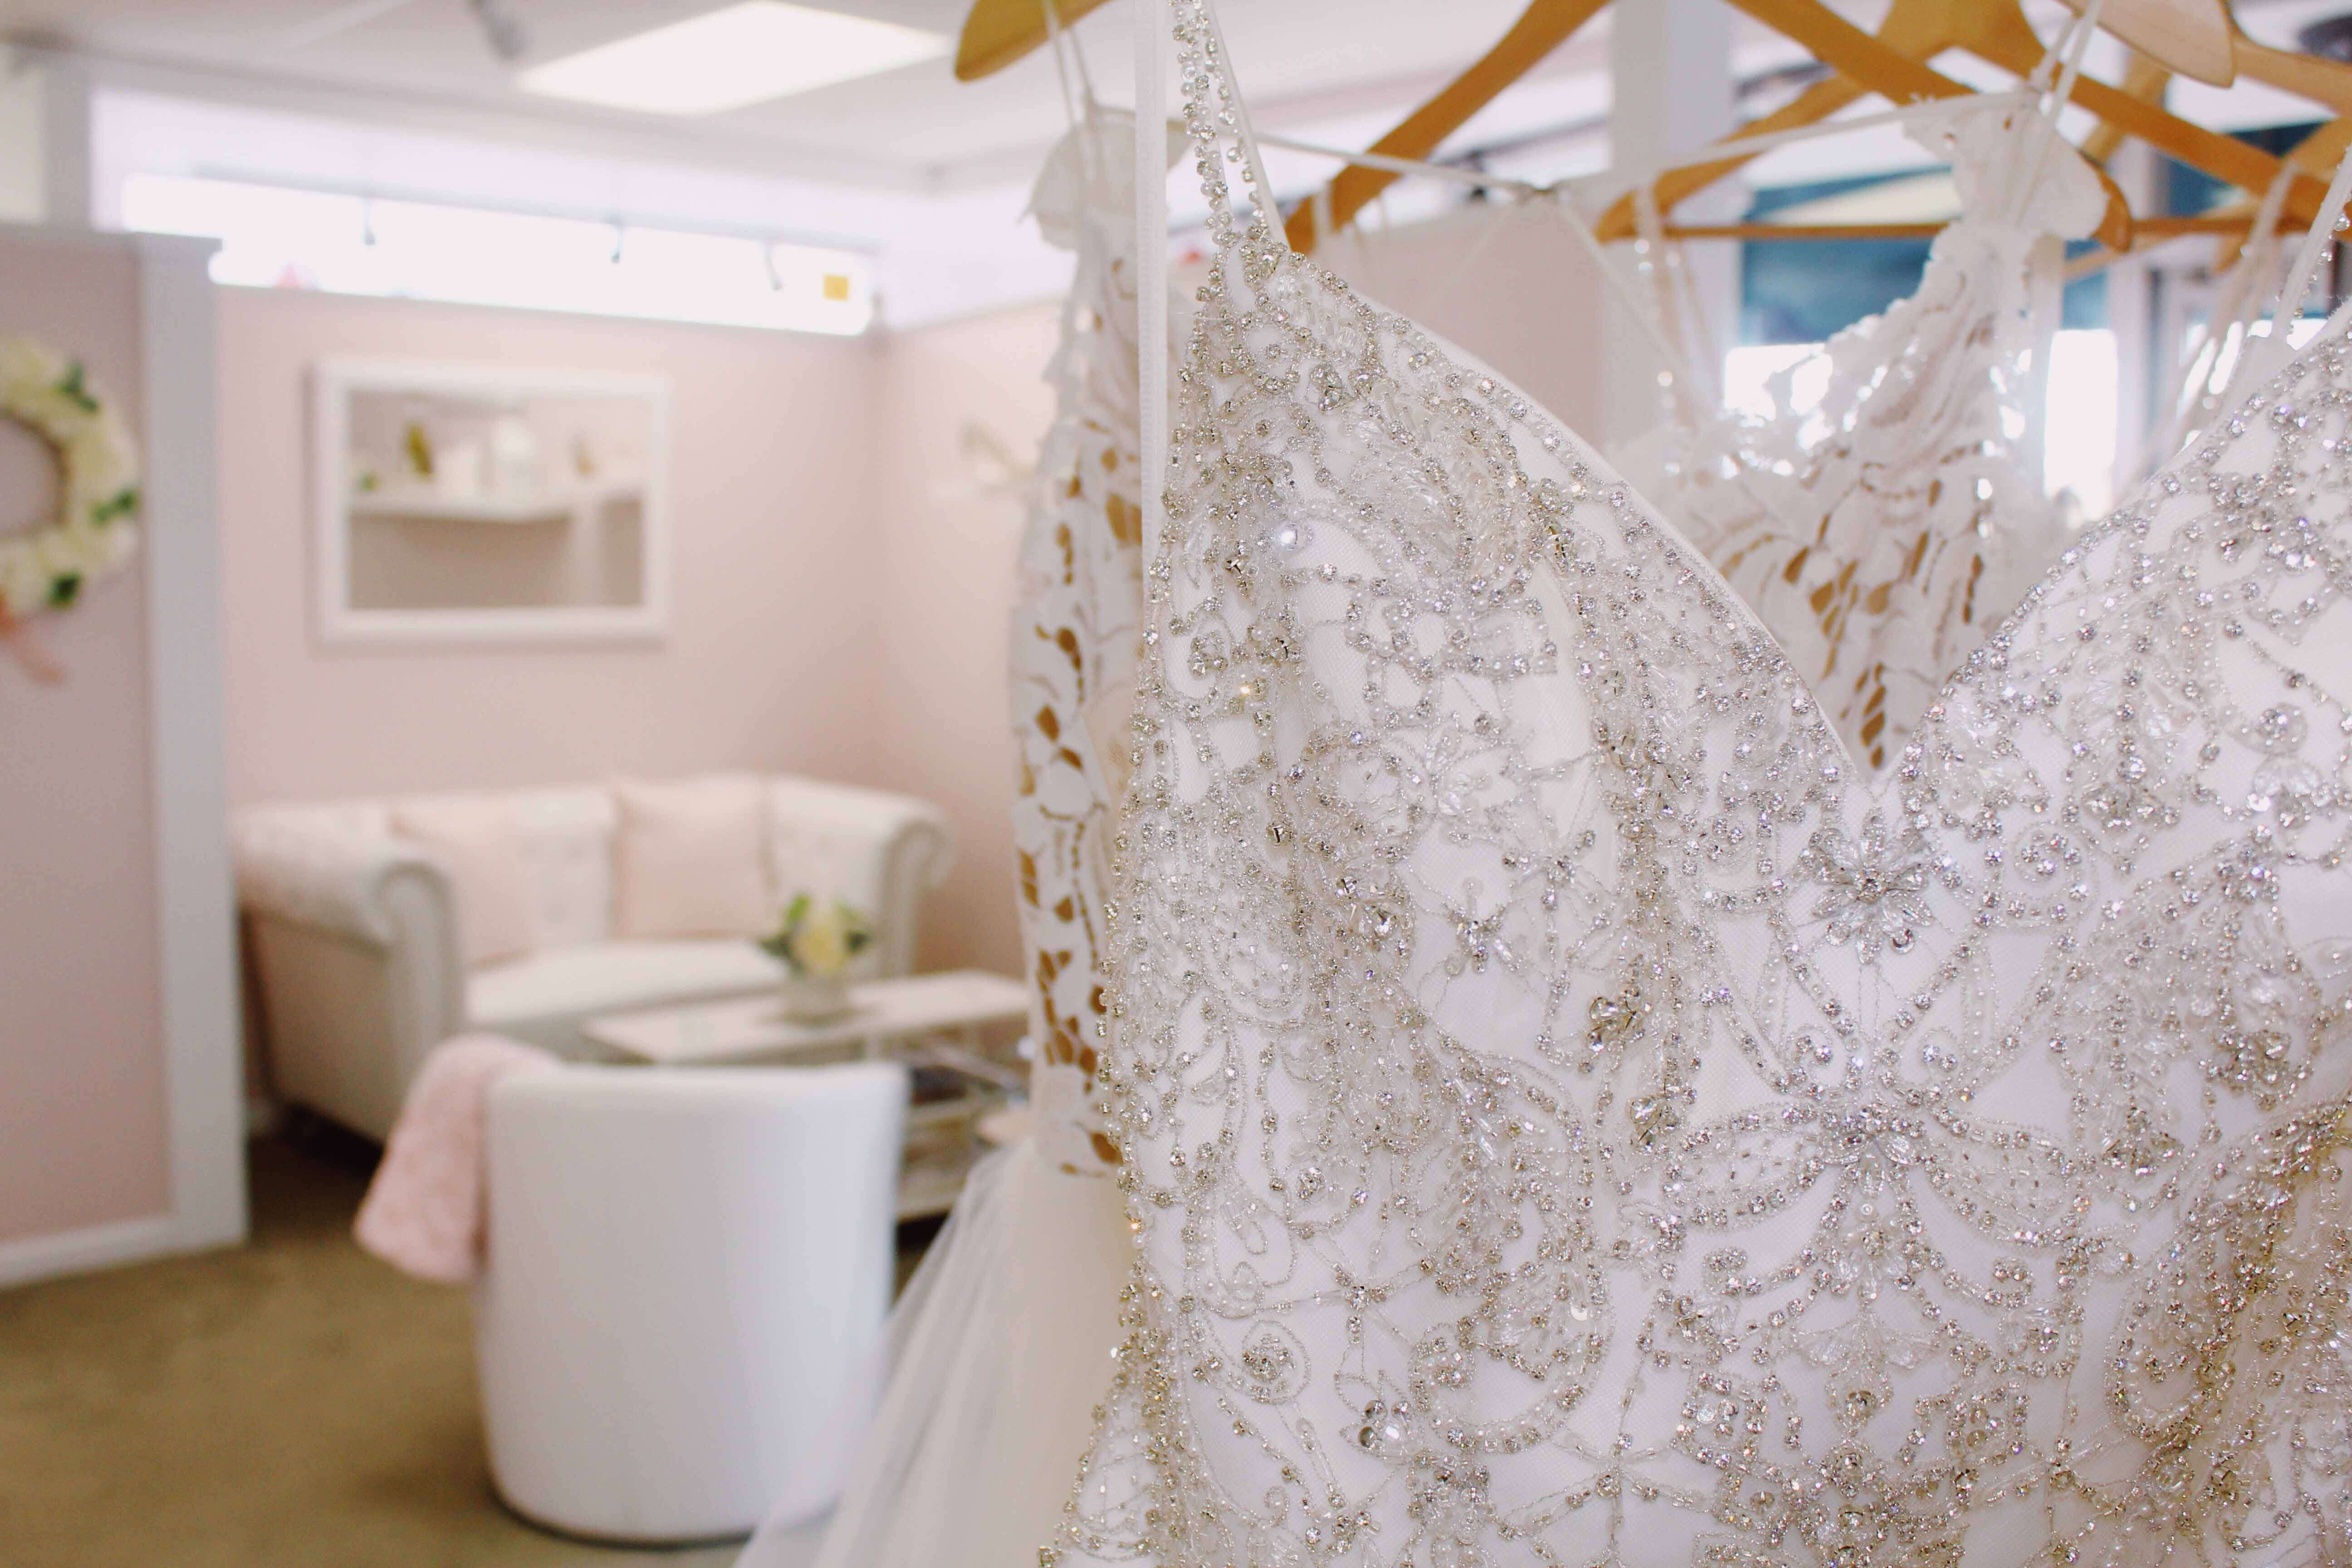 Rins Bridal Store Overview